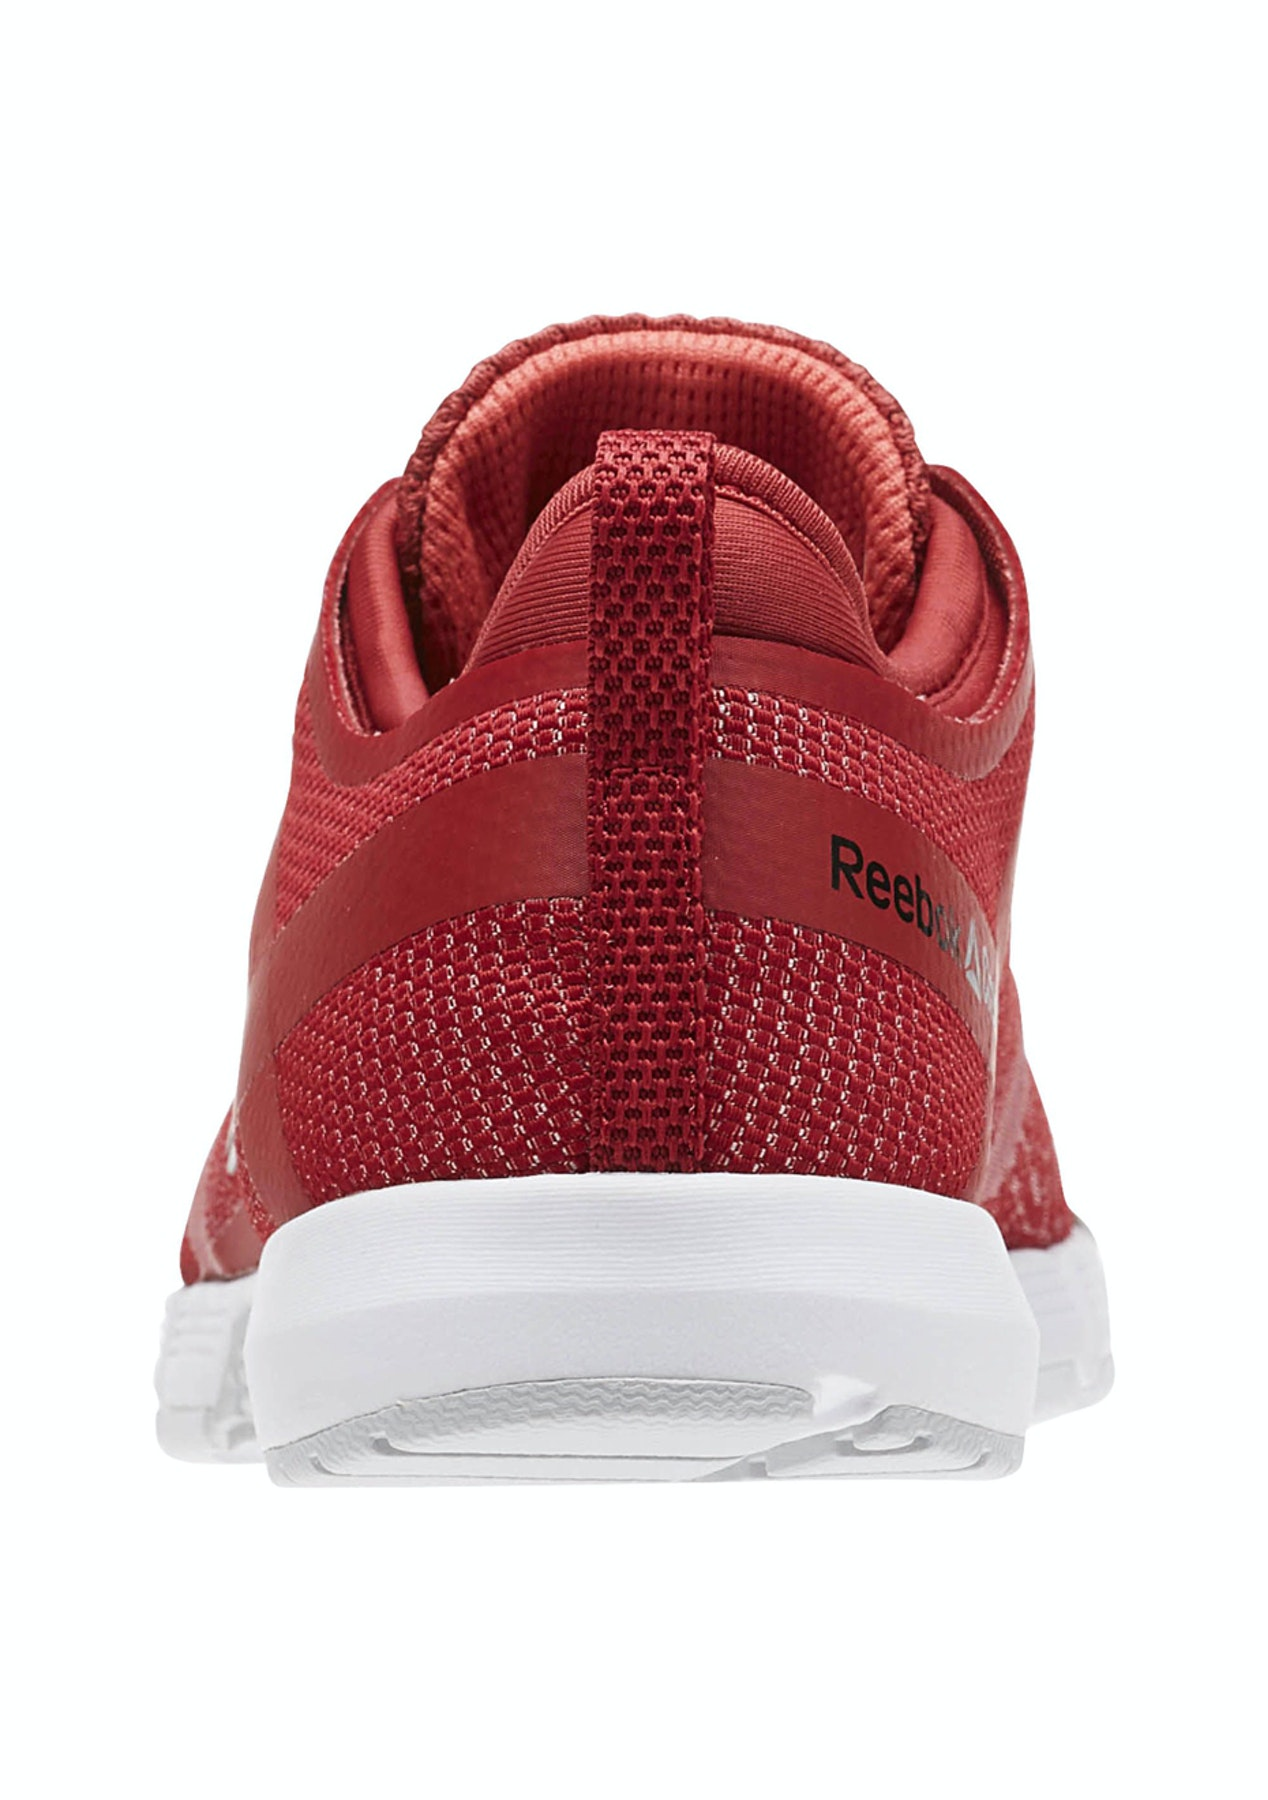 7830ade7148446 ... Reebok Womens - R Crossfit Grace Tr - Canyon RedFire CoralSkull  GreyWhiteSlv - Reebok Classics More ...